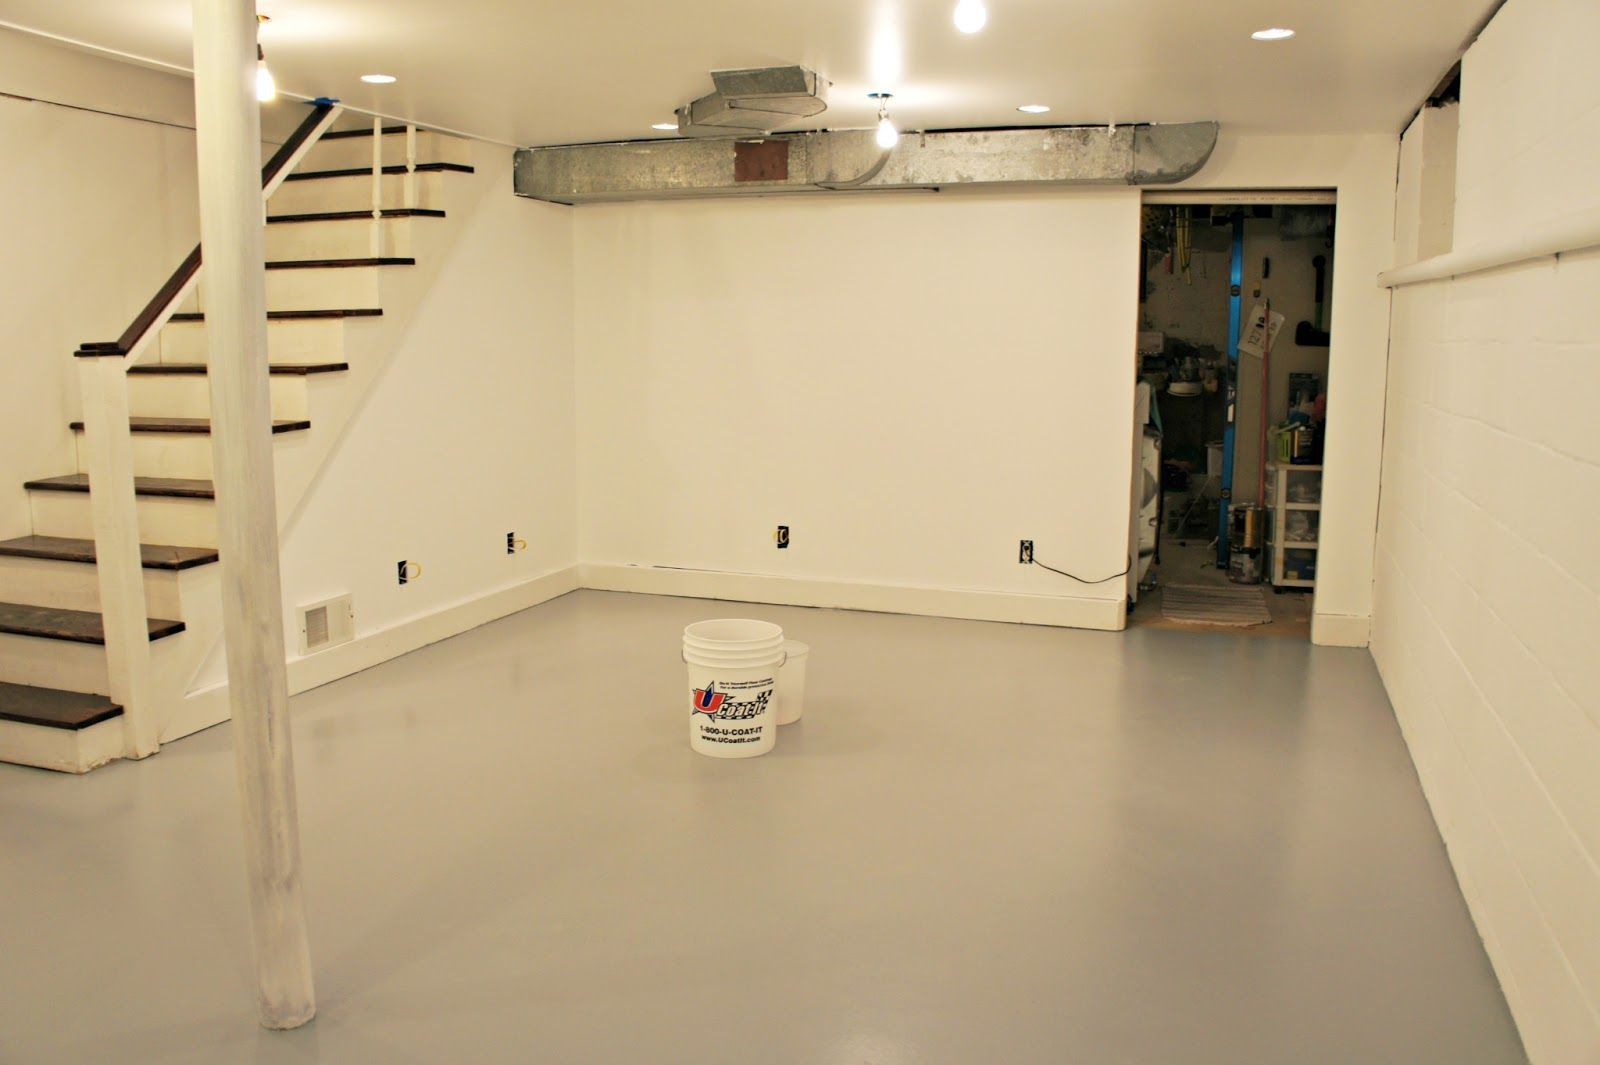 Amazing Solvent Based Epoxy Paint For Basement Floor Stairs With Black Wood Panels